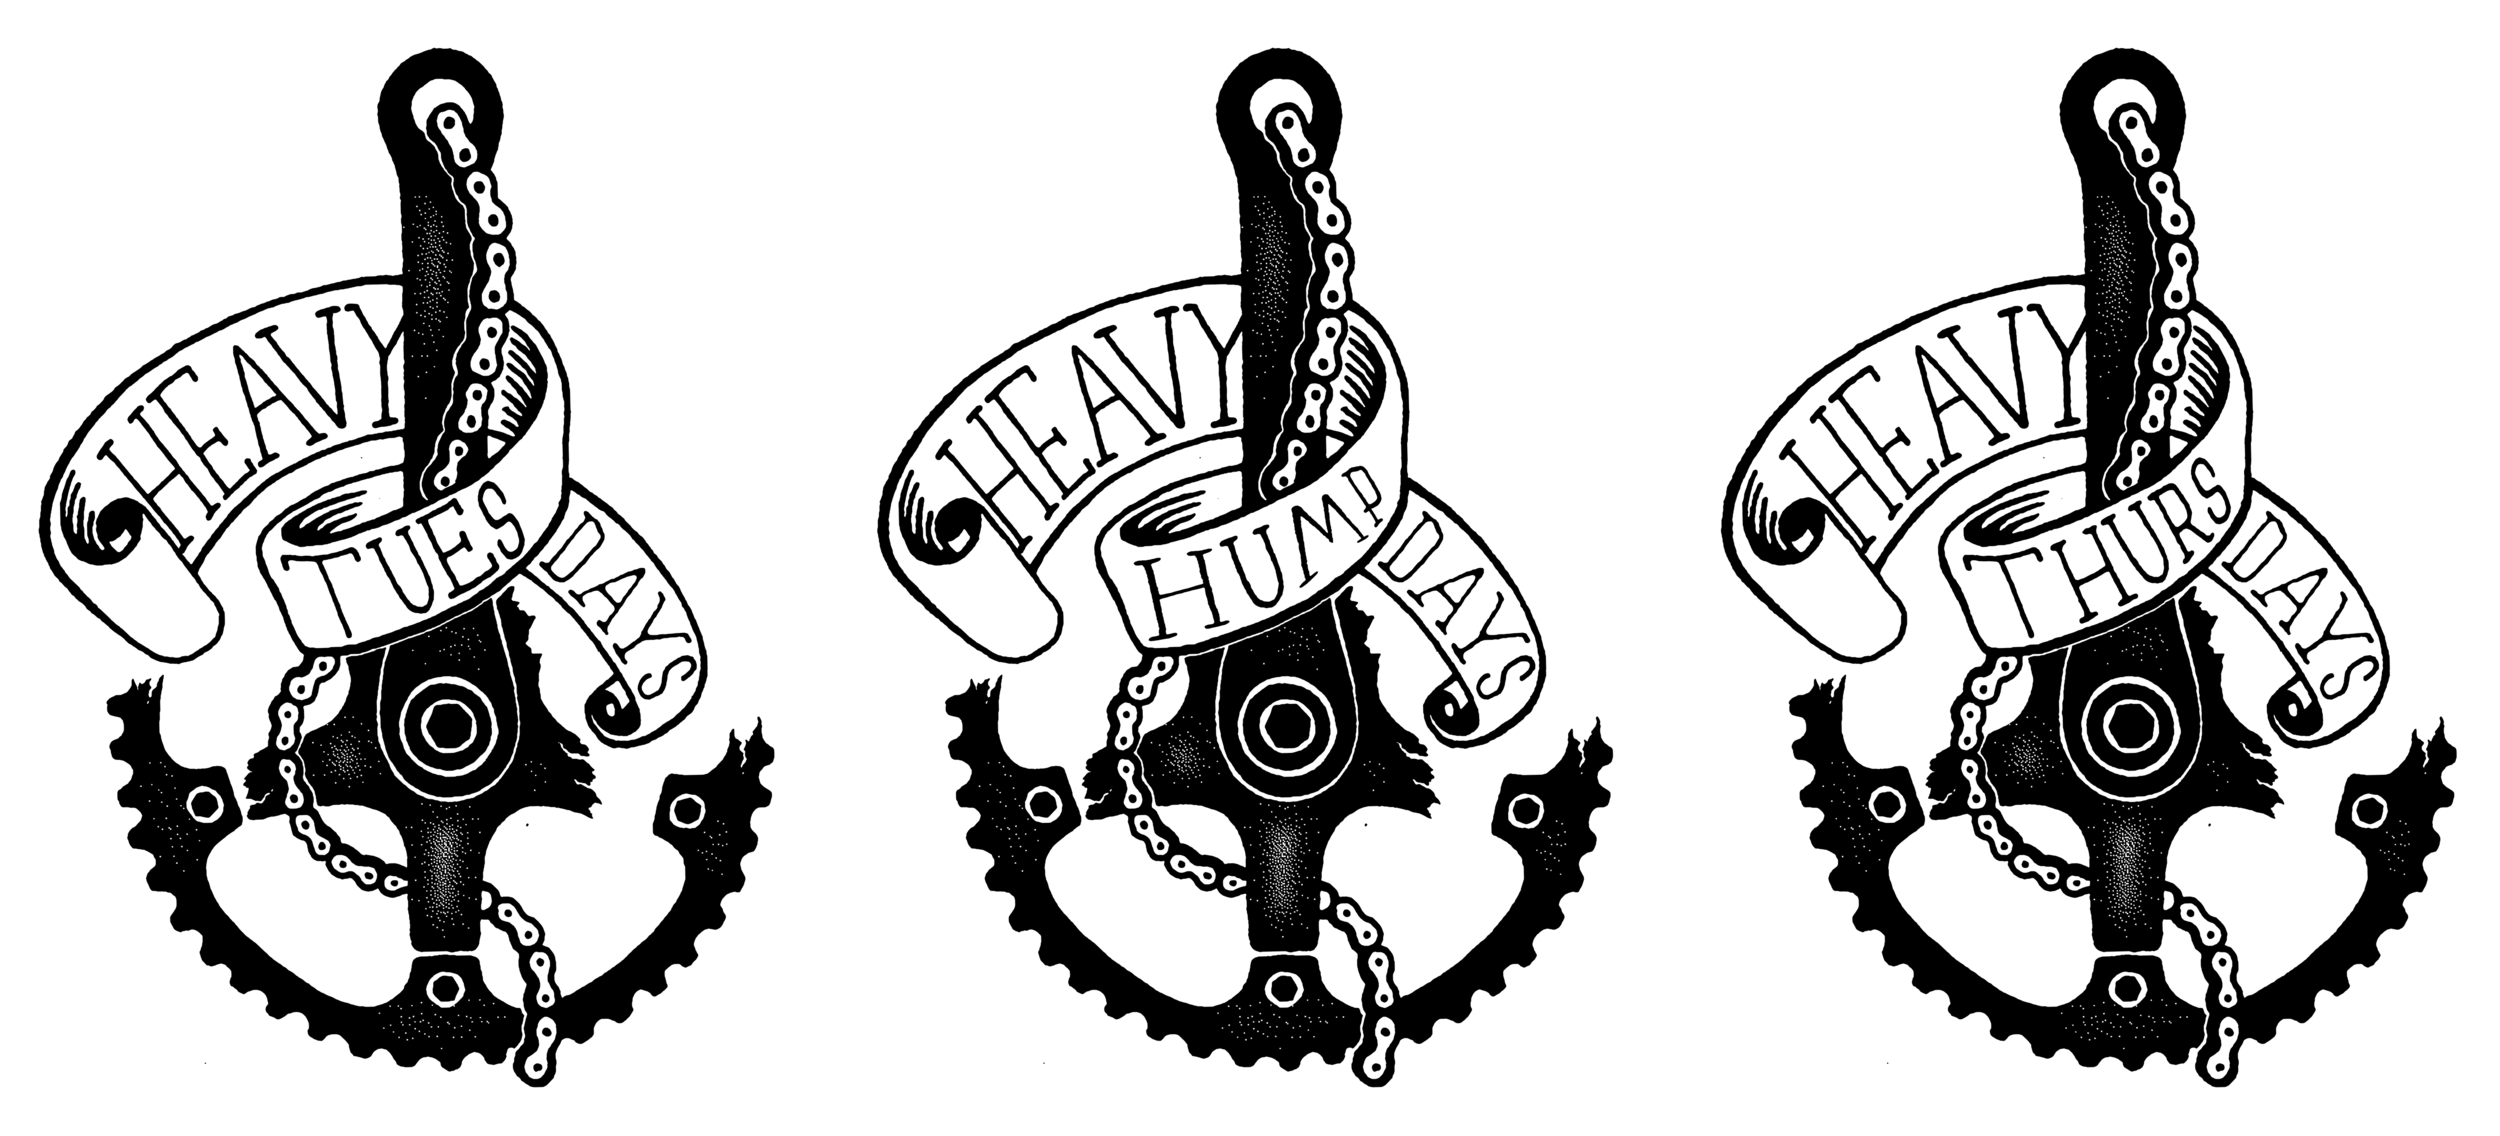 HT_Chain&Anchors.png